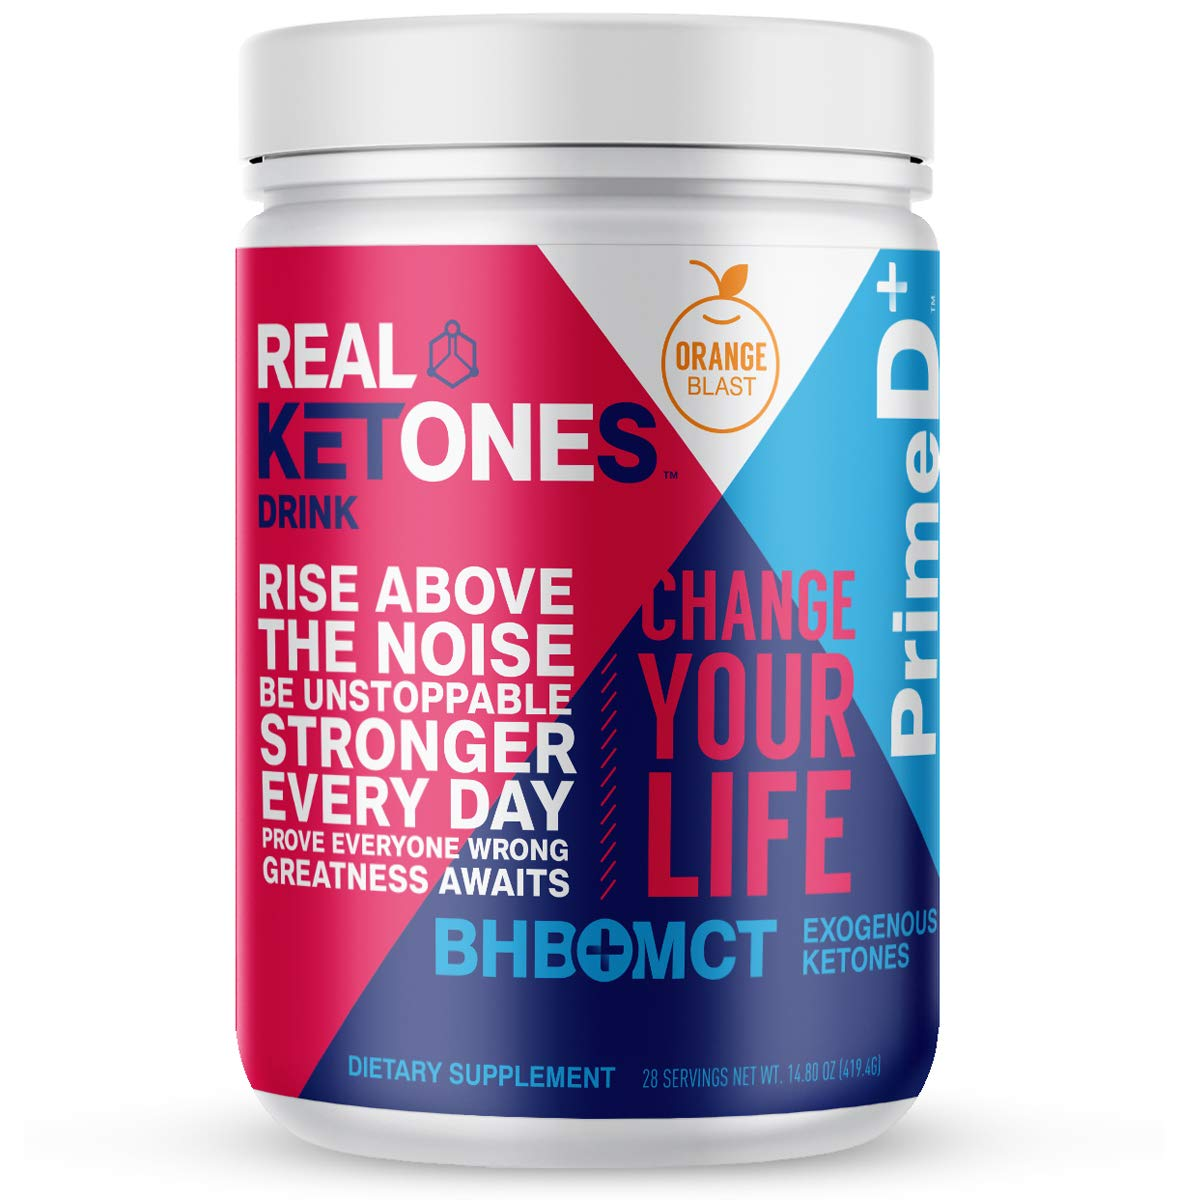 Real Ketones Prime D+ BHB (Beta-Hydroxybuterate) and MCT Exogenous Ketone Powder Supports Ketogenic Diet, Energy Boost, Mental Clarity (Orange Blast) (28 Serving)